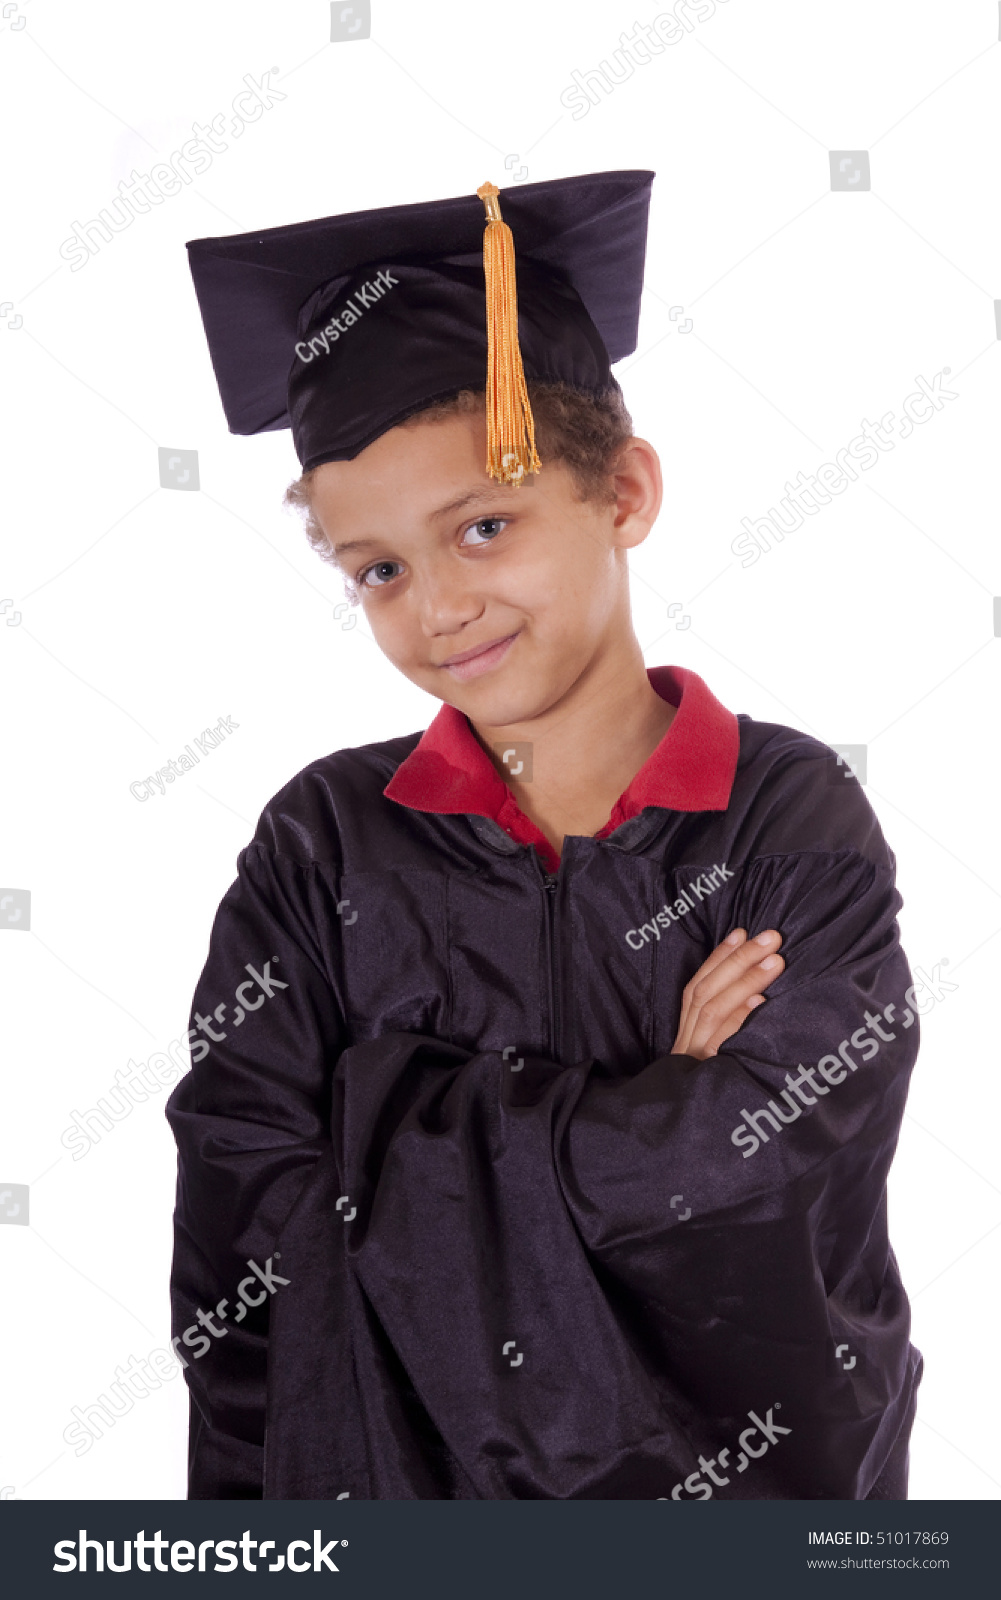 Young Boy Graduation Gown Cap Stock Photo (Royalty Free) 51017869 ...